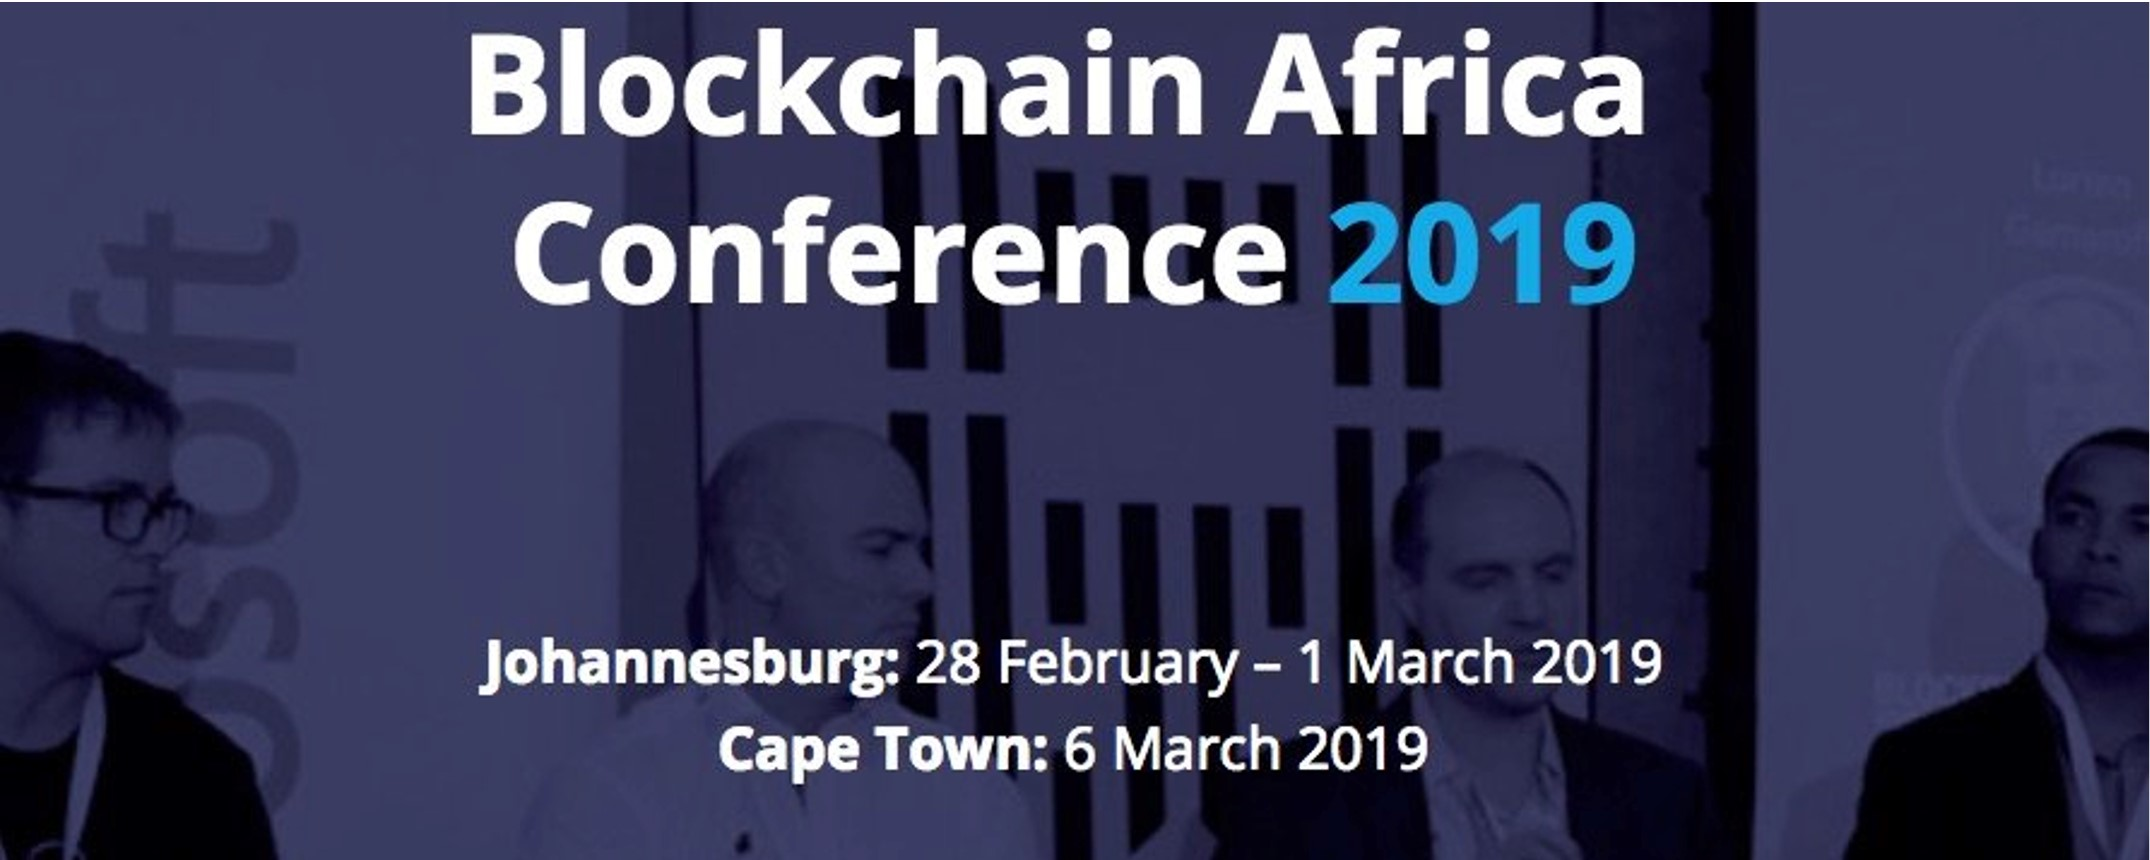 Blockchain Africa - Blockchain Africa Conference 2019 - Cape Town Movemeback African event cover image